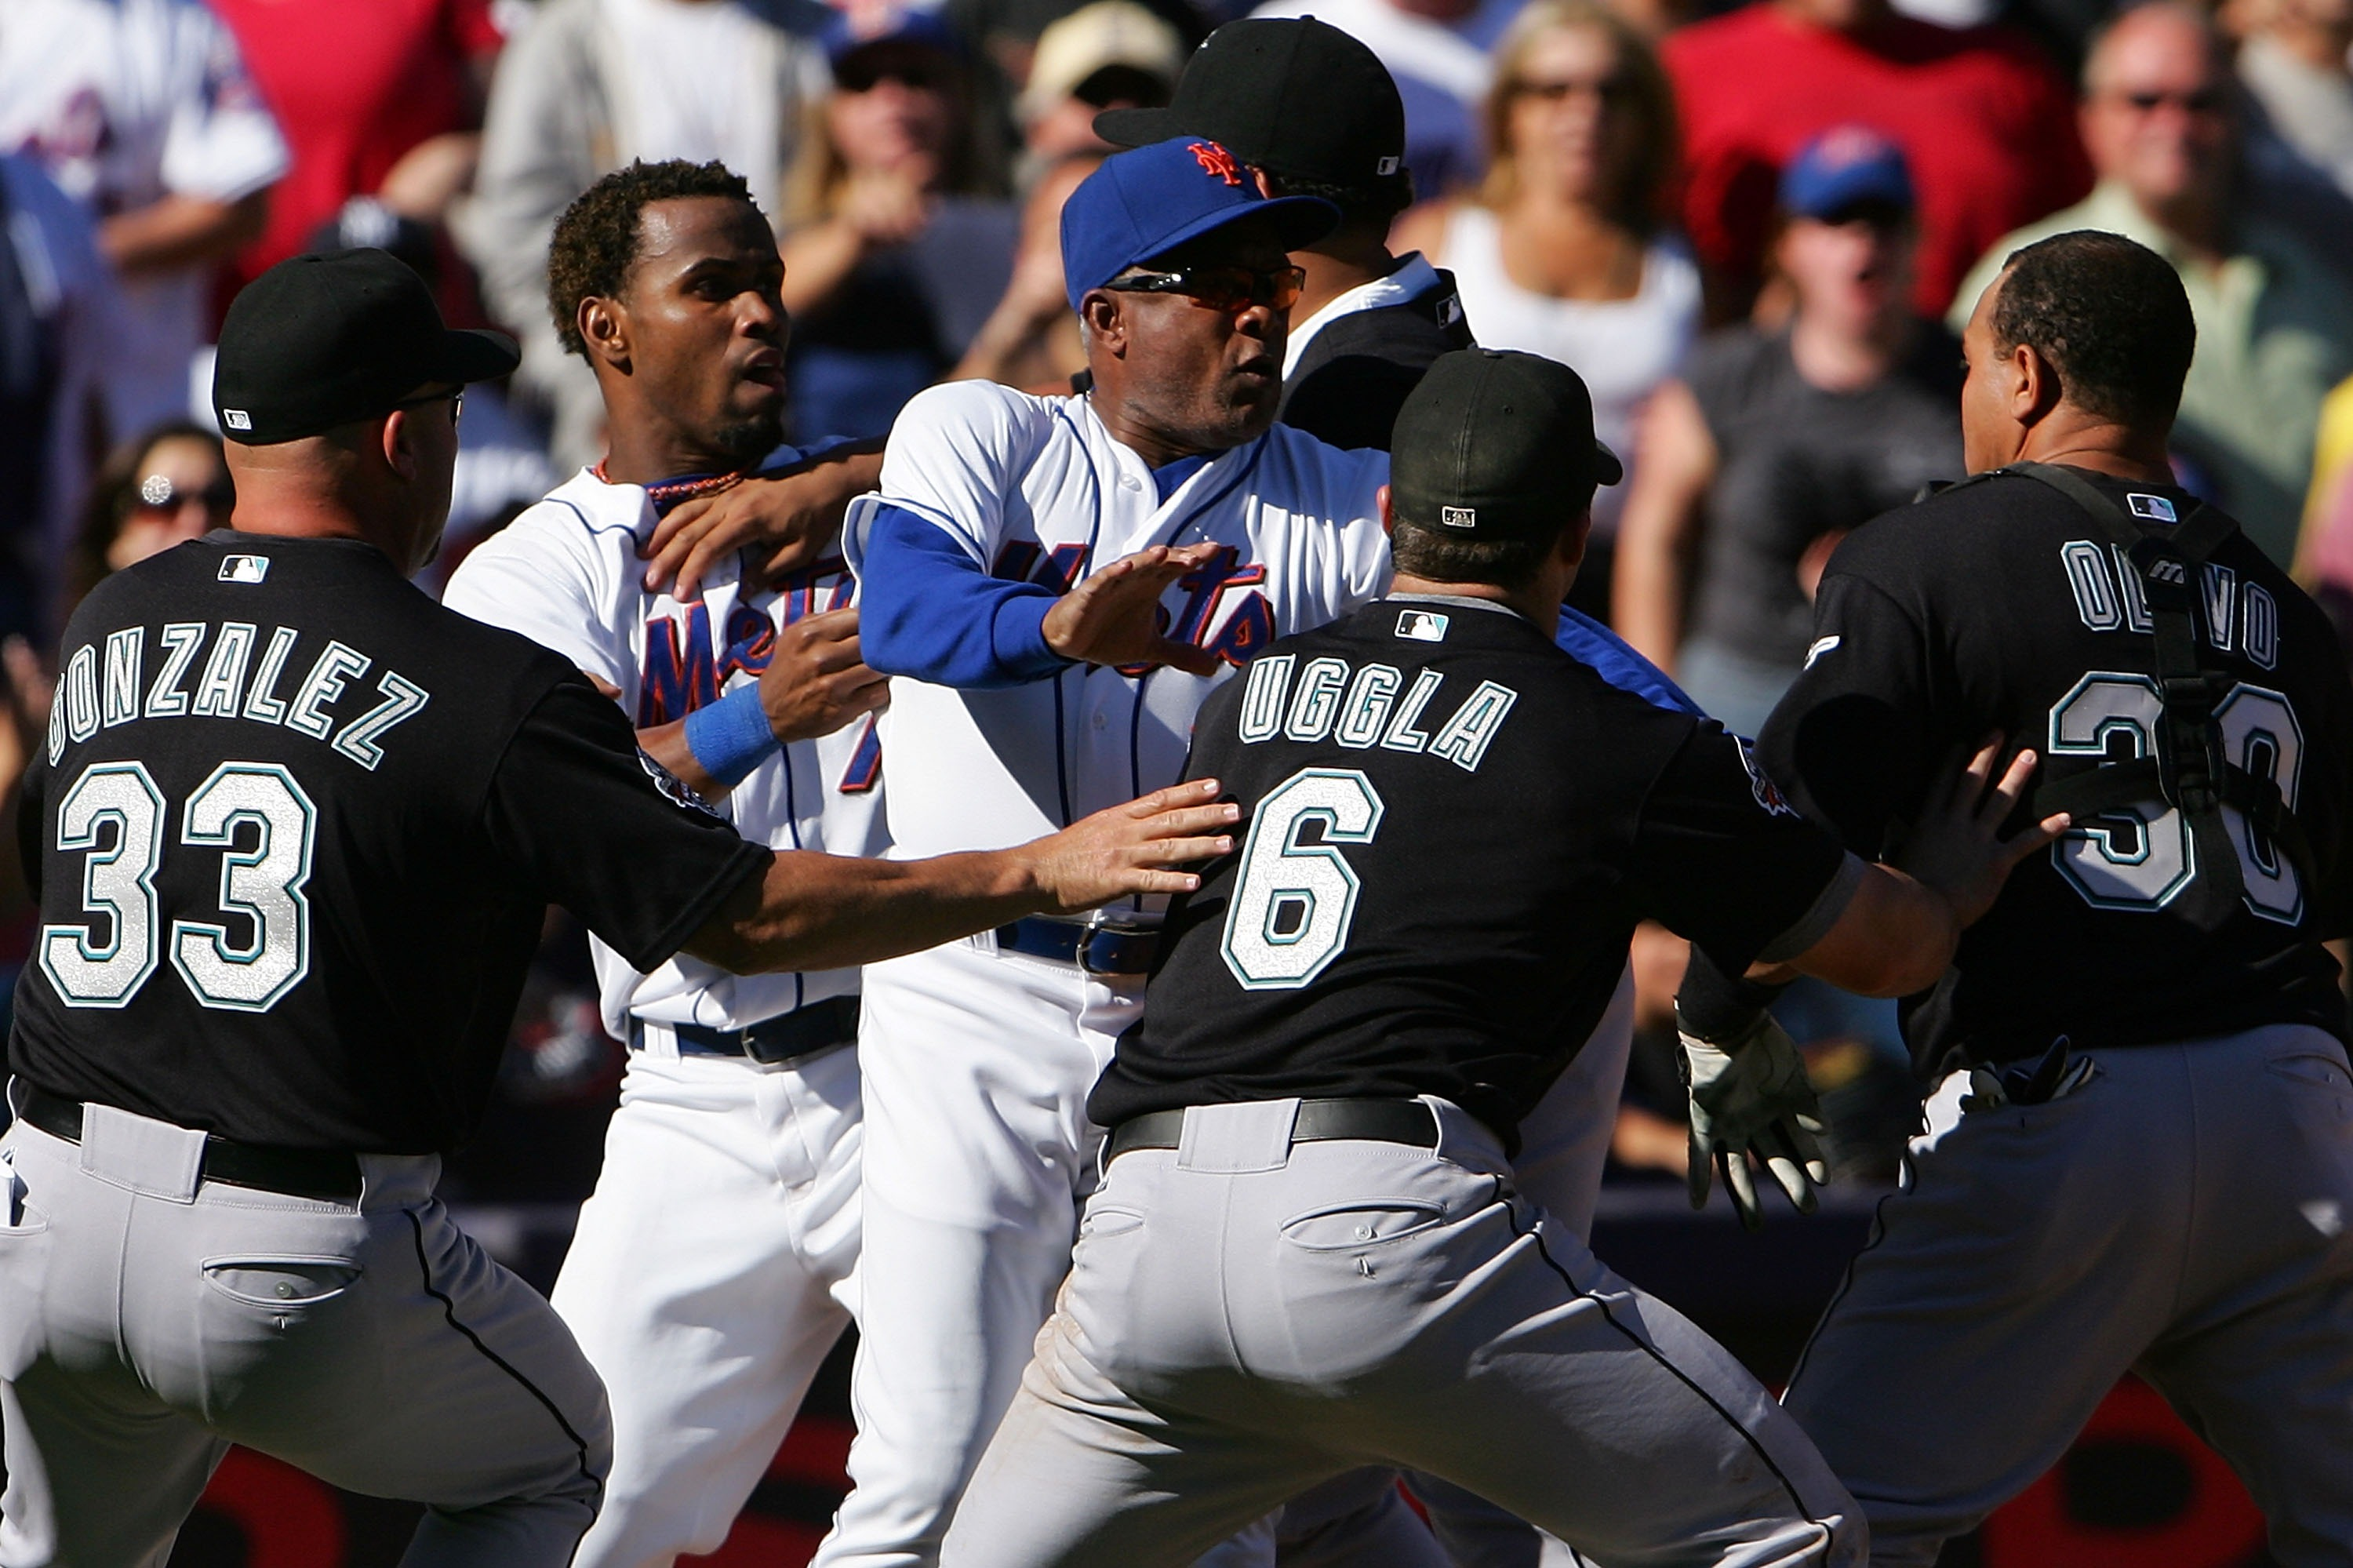 NEW YORK - SEPTEMBER 29:  Miguel Cabrera #24 of the Florida Marlins holds back Jose Reyes #7 of the New York Mets as New York Mets third base coach Sandy Alomar #28 holds back Marlins players Fredi Gonzalez #33, Dan Uggla #6 and Miguel Olivo #30 after a f